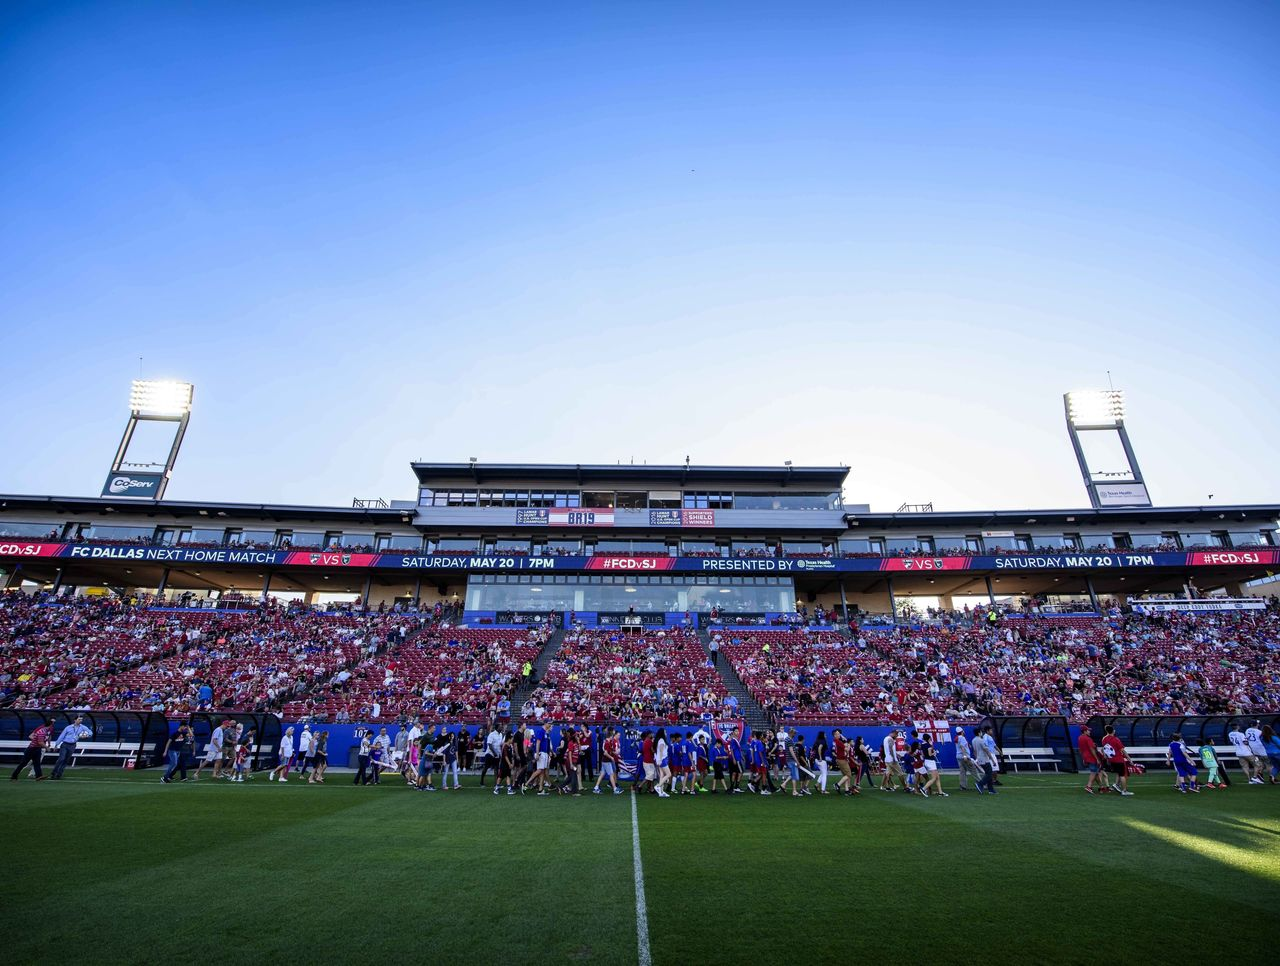 Cropped 2017 05 15t031536z 1447357355 nocid rtrmadp 3 mls new york city fc at fc dallas